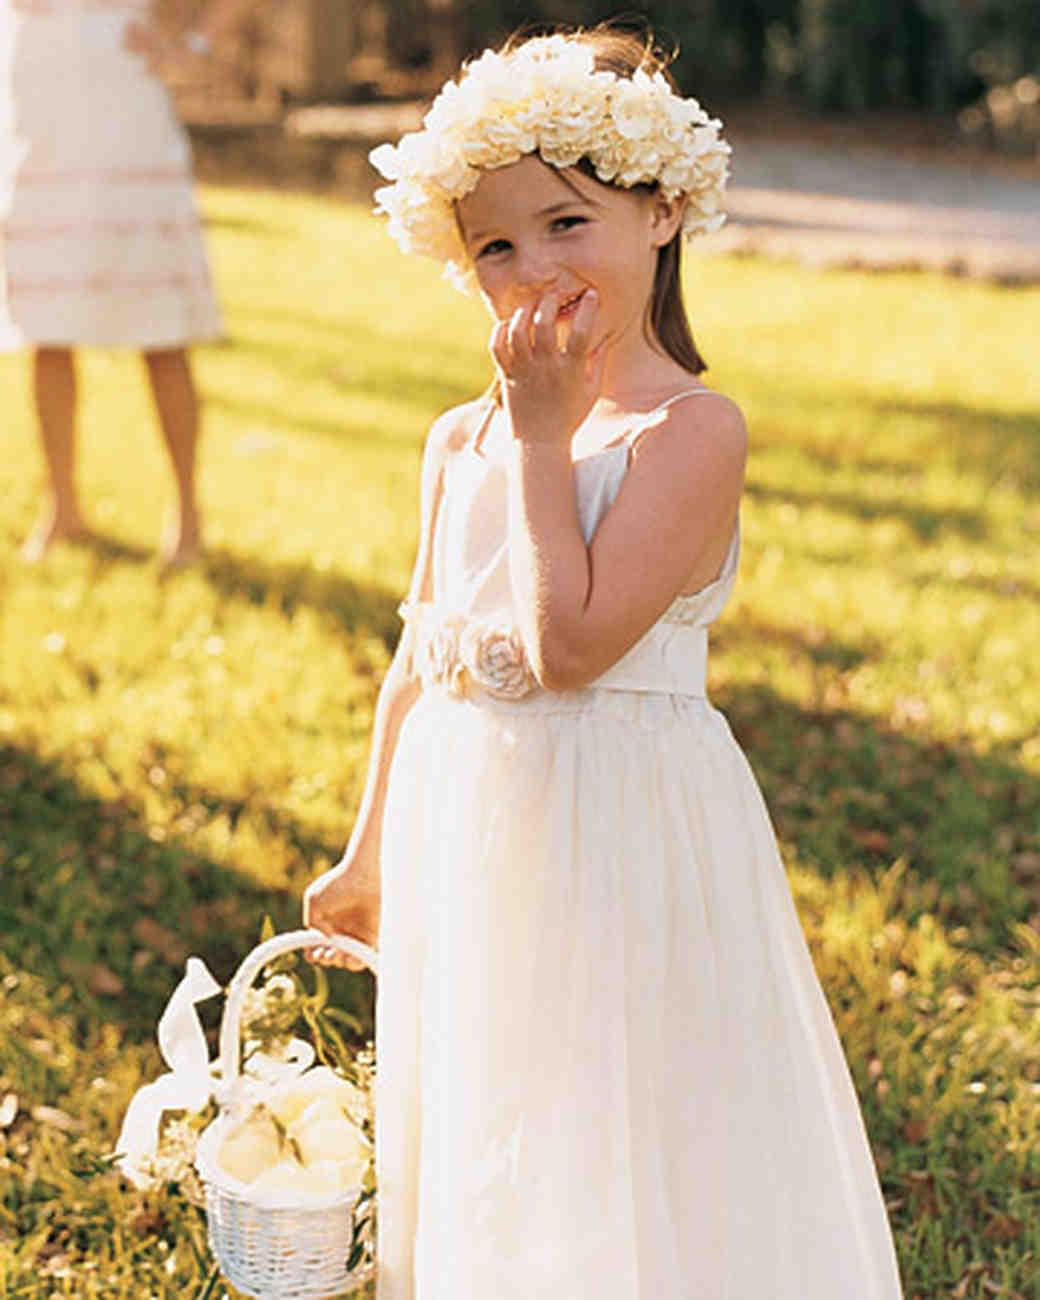 Wedding Flower Girl: An Ivory-Colored Outdoor Wedding In Charleston, South